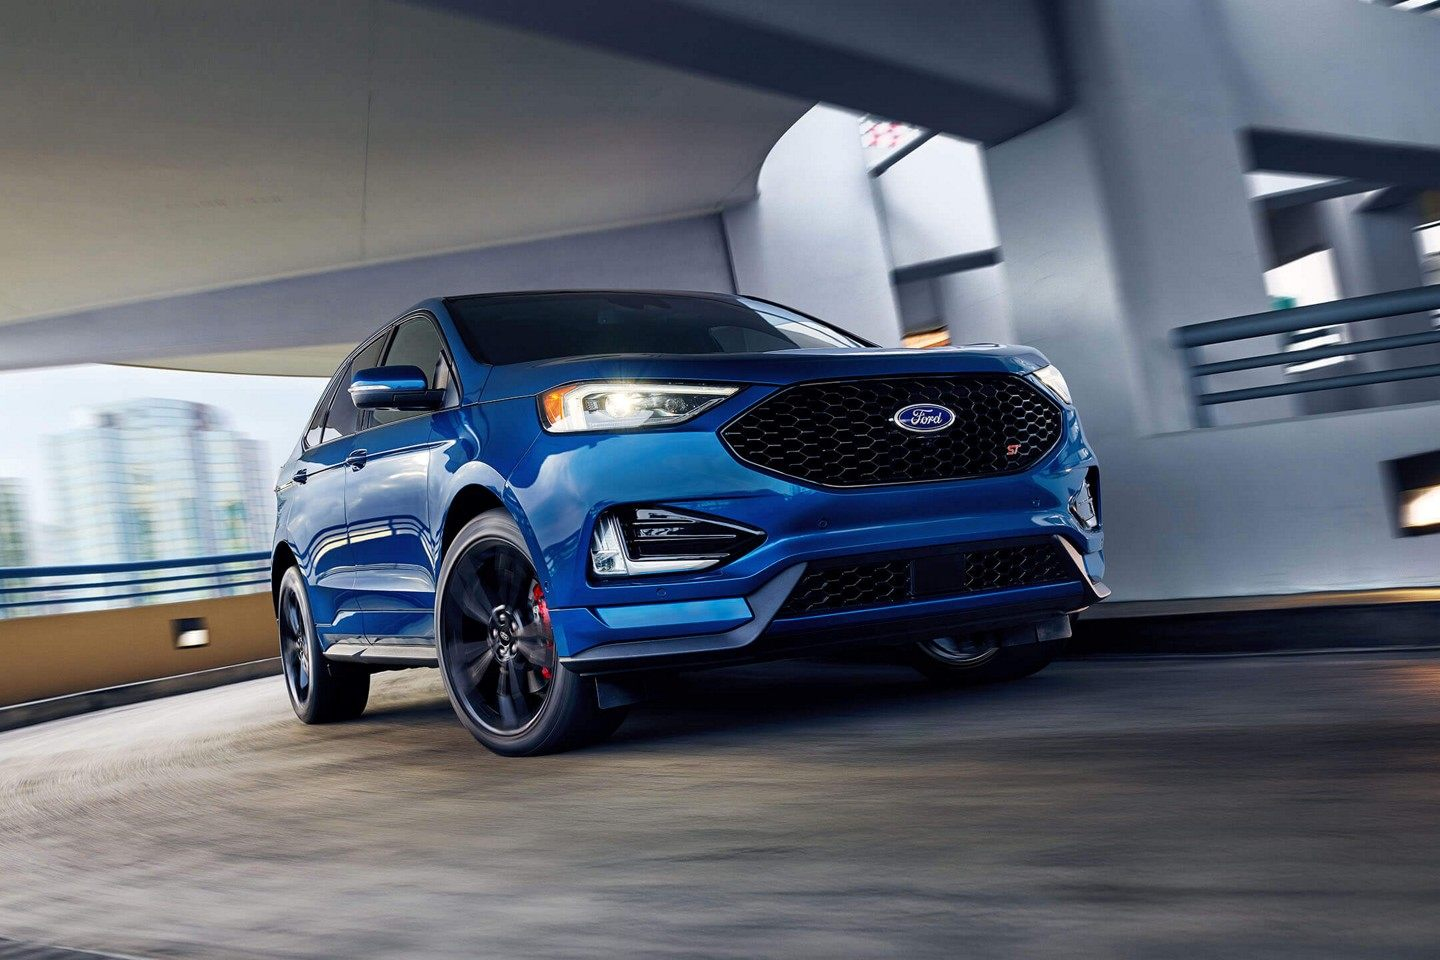 2019 Ford Edge Elkhart, IN